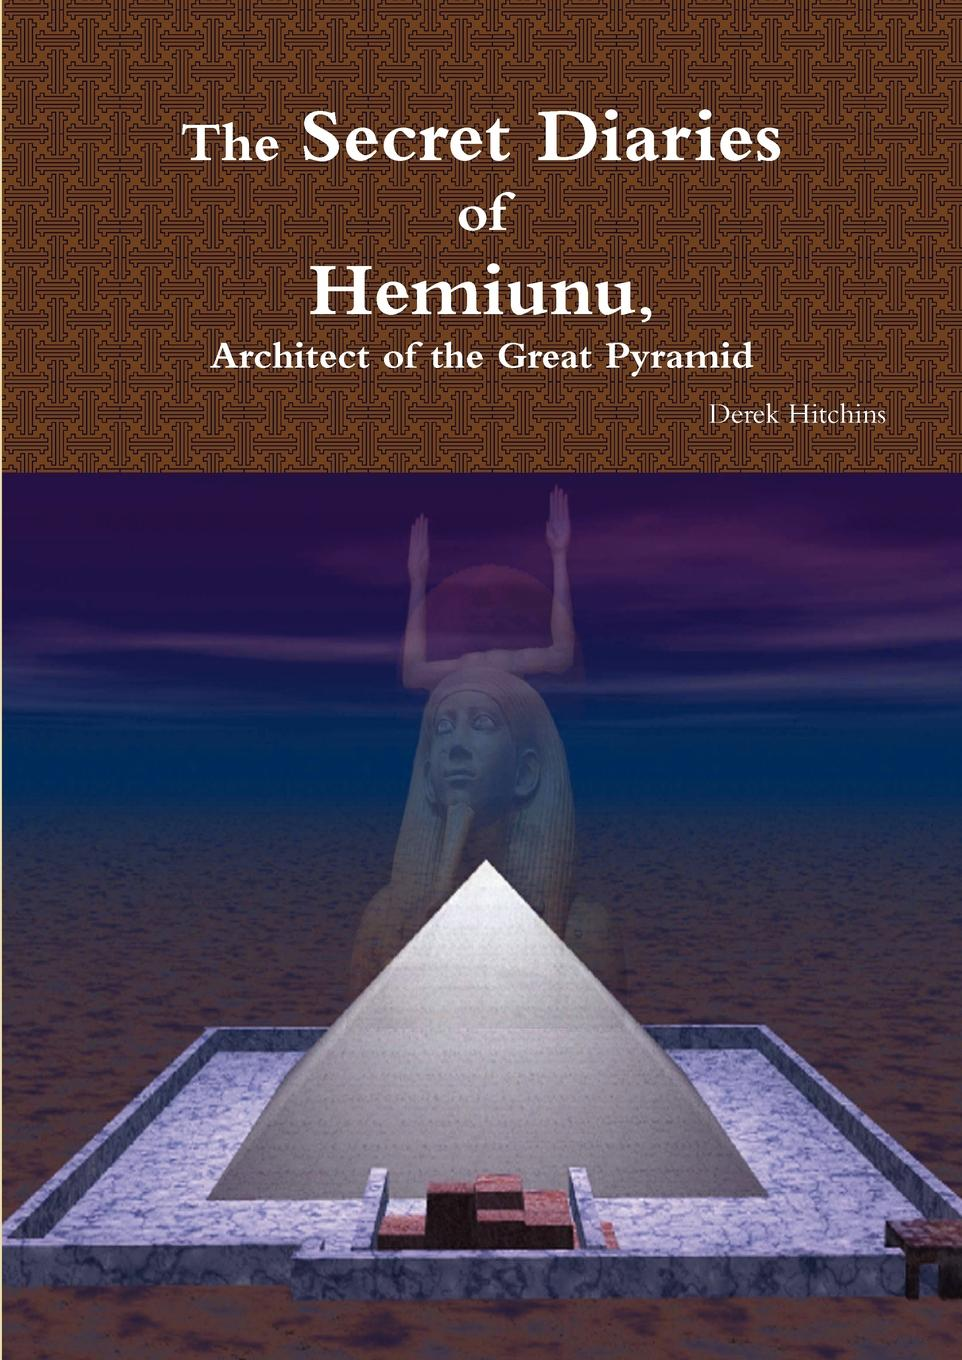 Derek Hitchins The Secret Diaries of Hemiunu, Architect of the Great Pyramid